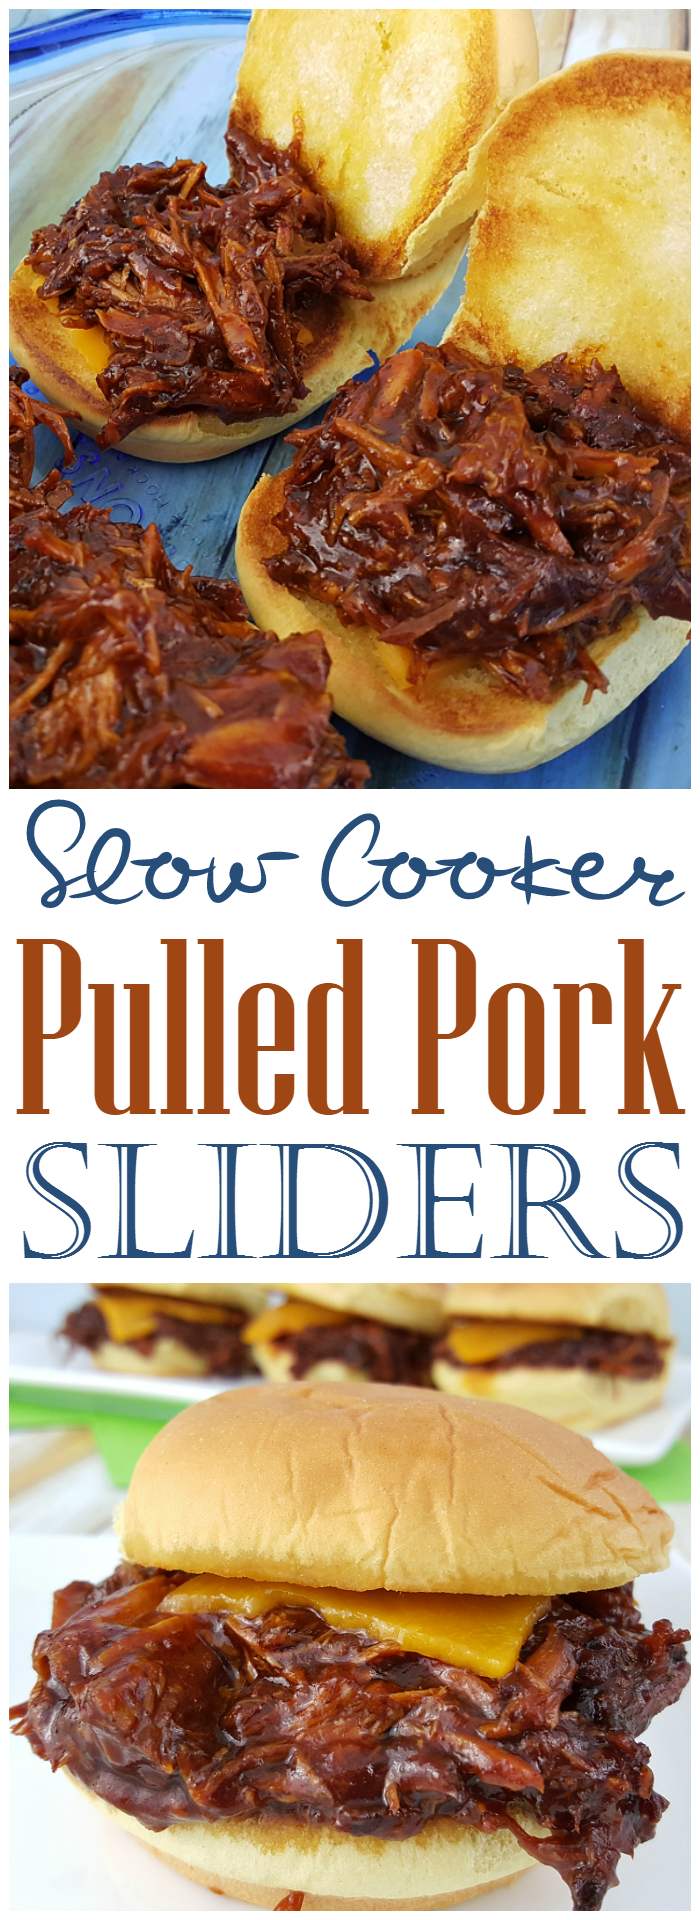 Slow Cooker Pulled Pork Sliders - Pulled Pork Sliders are perfect for an easy meal for your family for dinner, something to make for company coming over, or a dish to bring with you to a party!